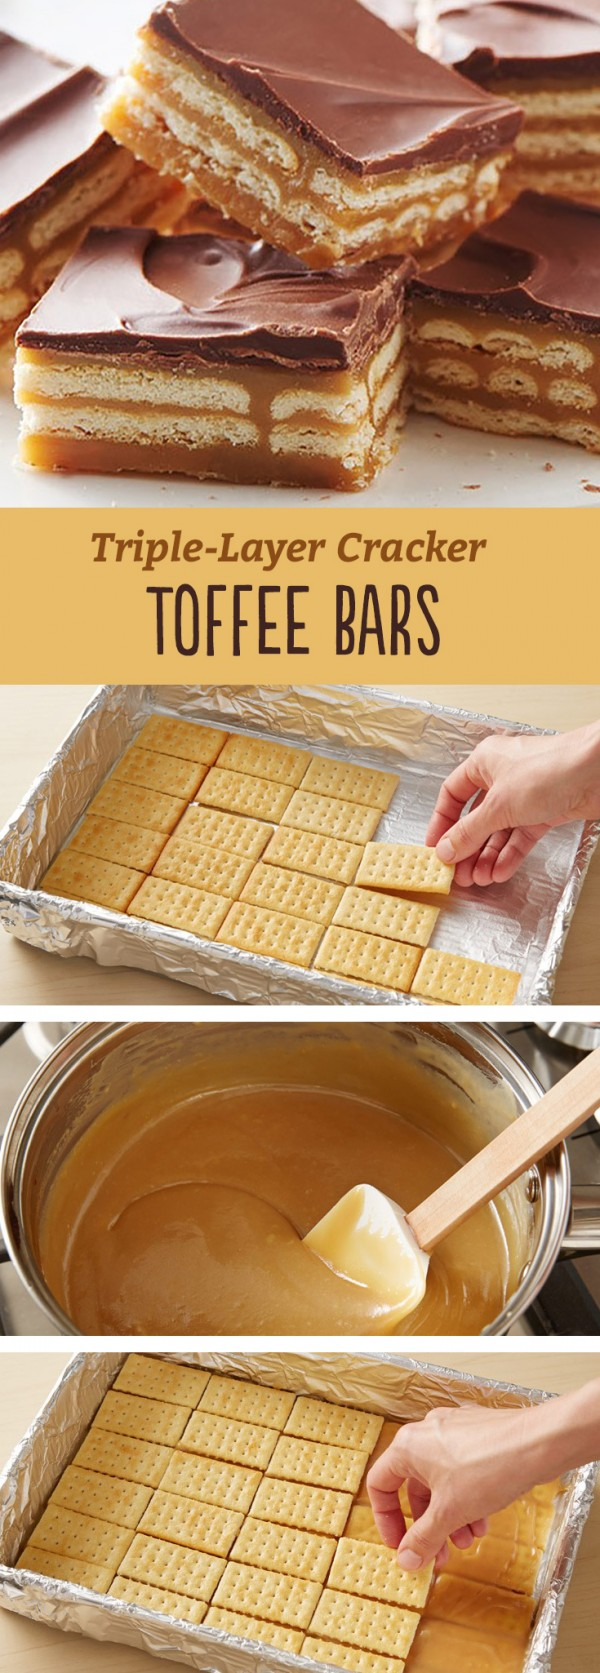 Get the recipe ♥ Triple Layer Cracker Toffee Bars #besttoeat @recipes_to_go